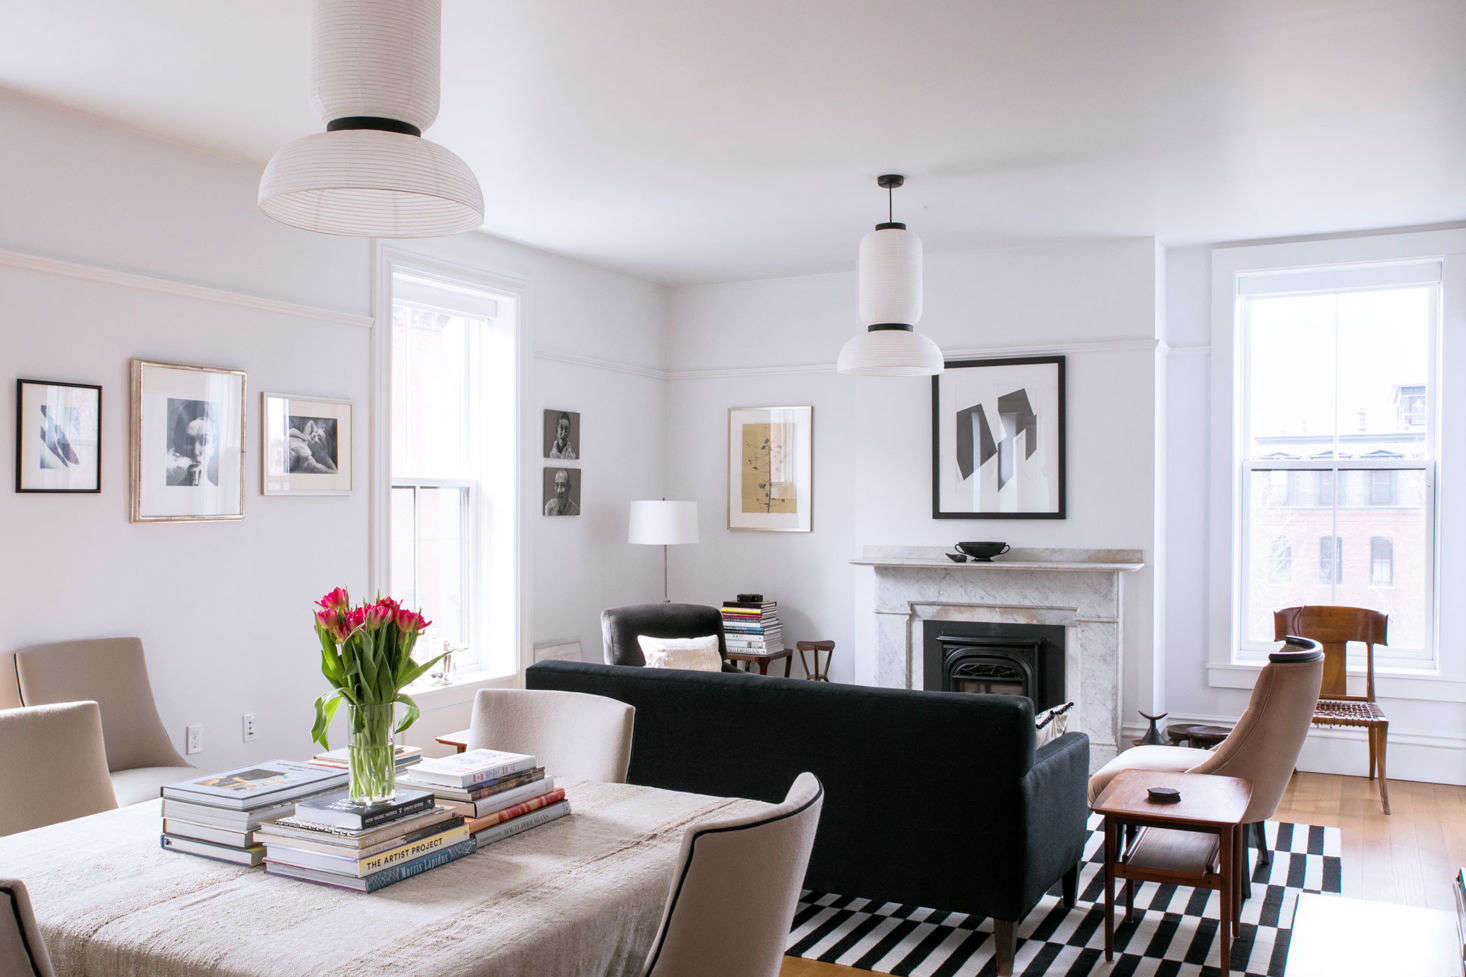 Light, reflected off the white walls and ceiling, gives the spaces a fresh, open feel.